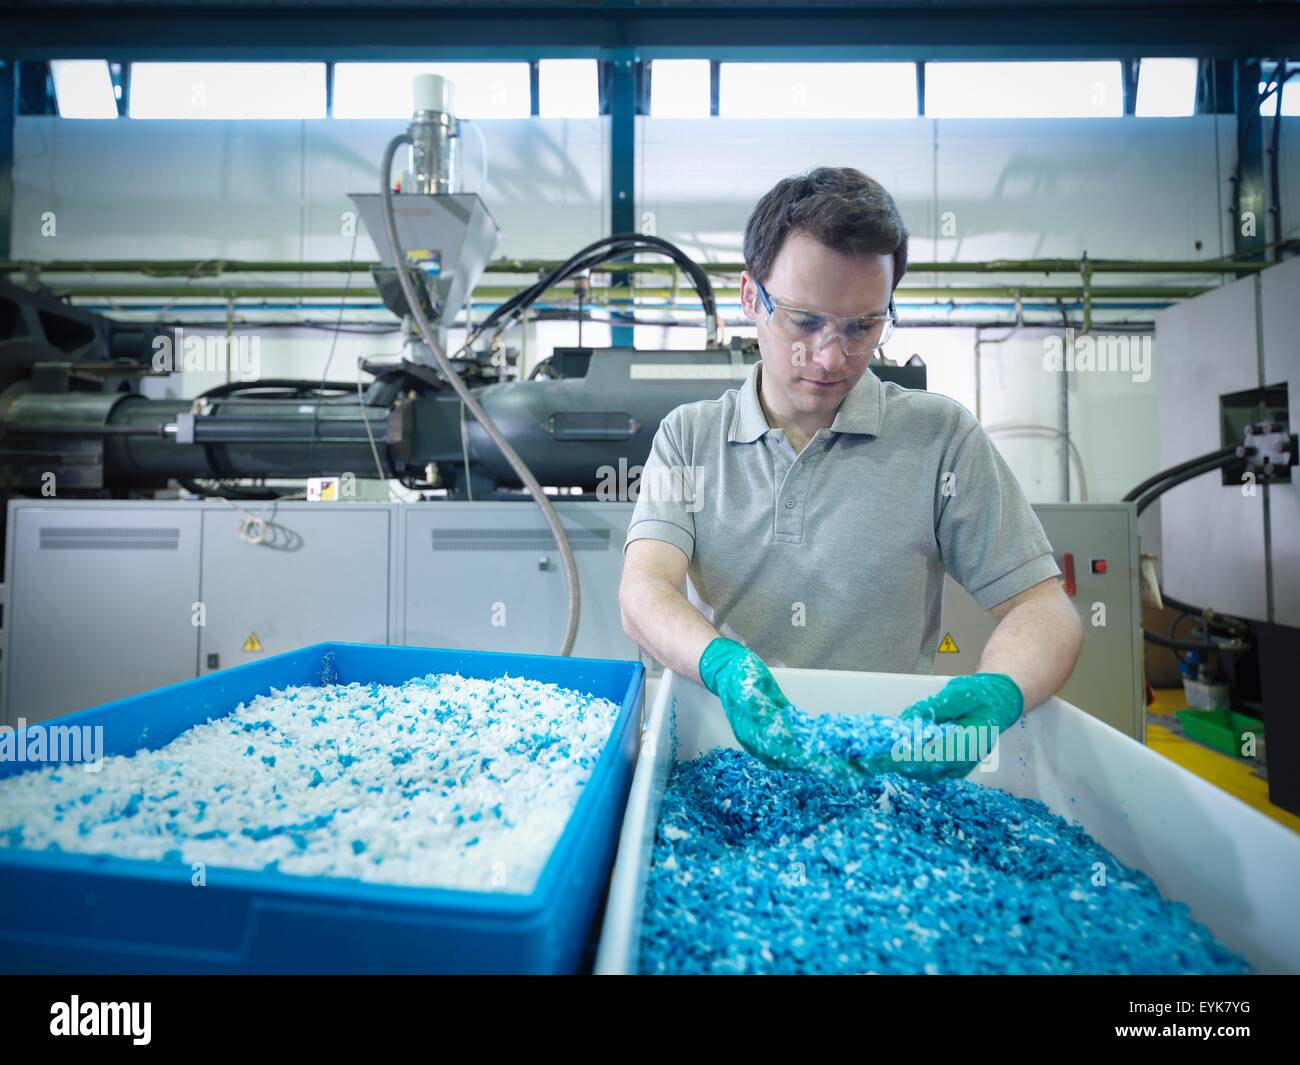 Worker inspecting recycled plastic in plastics factory - Stock Image